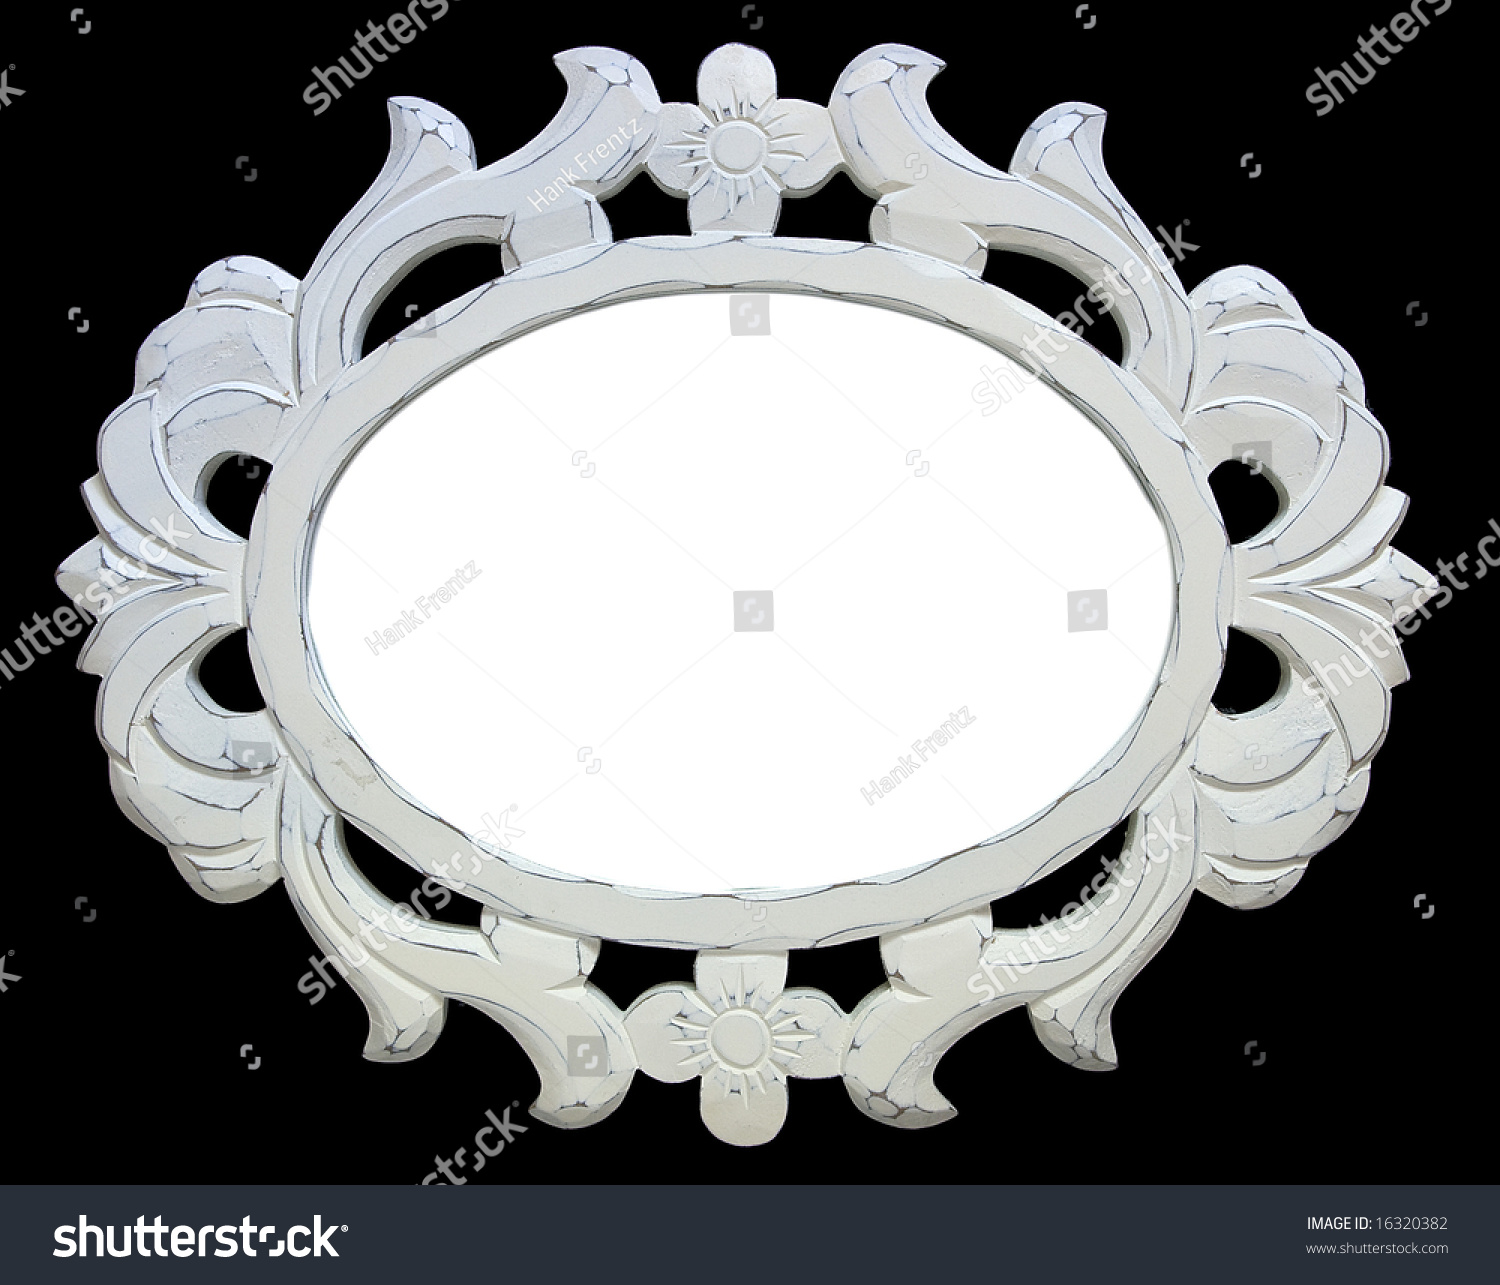 ornate oval vintage white frame on black background preview save to a lightbox